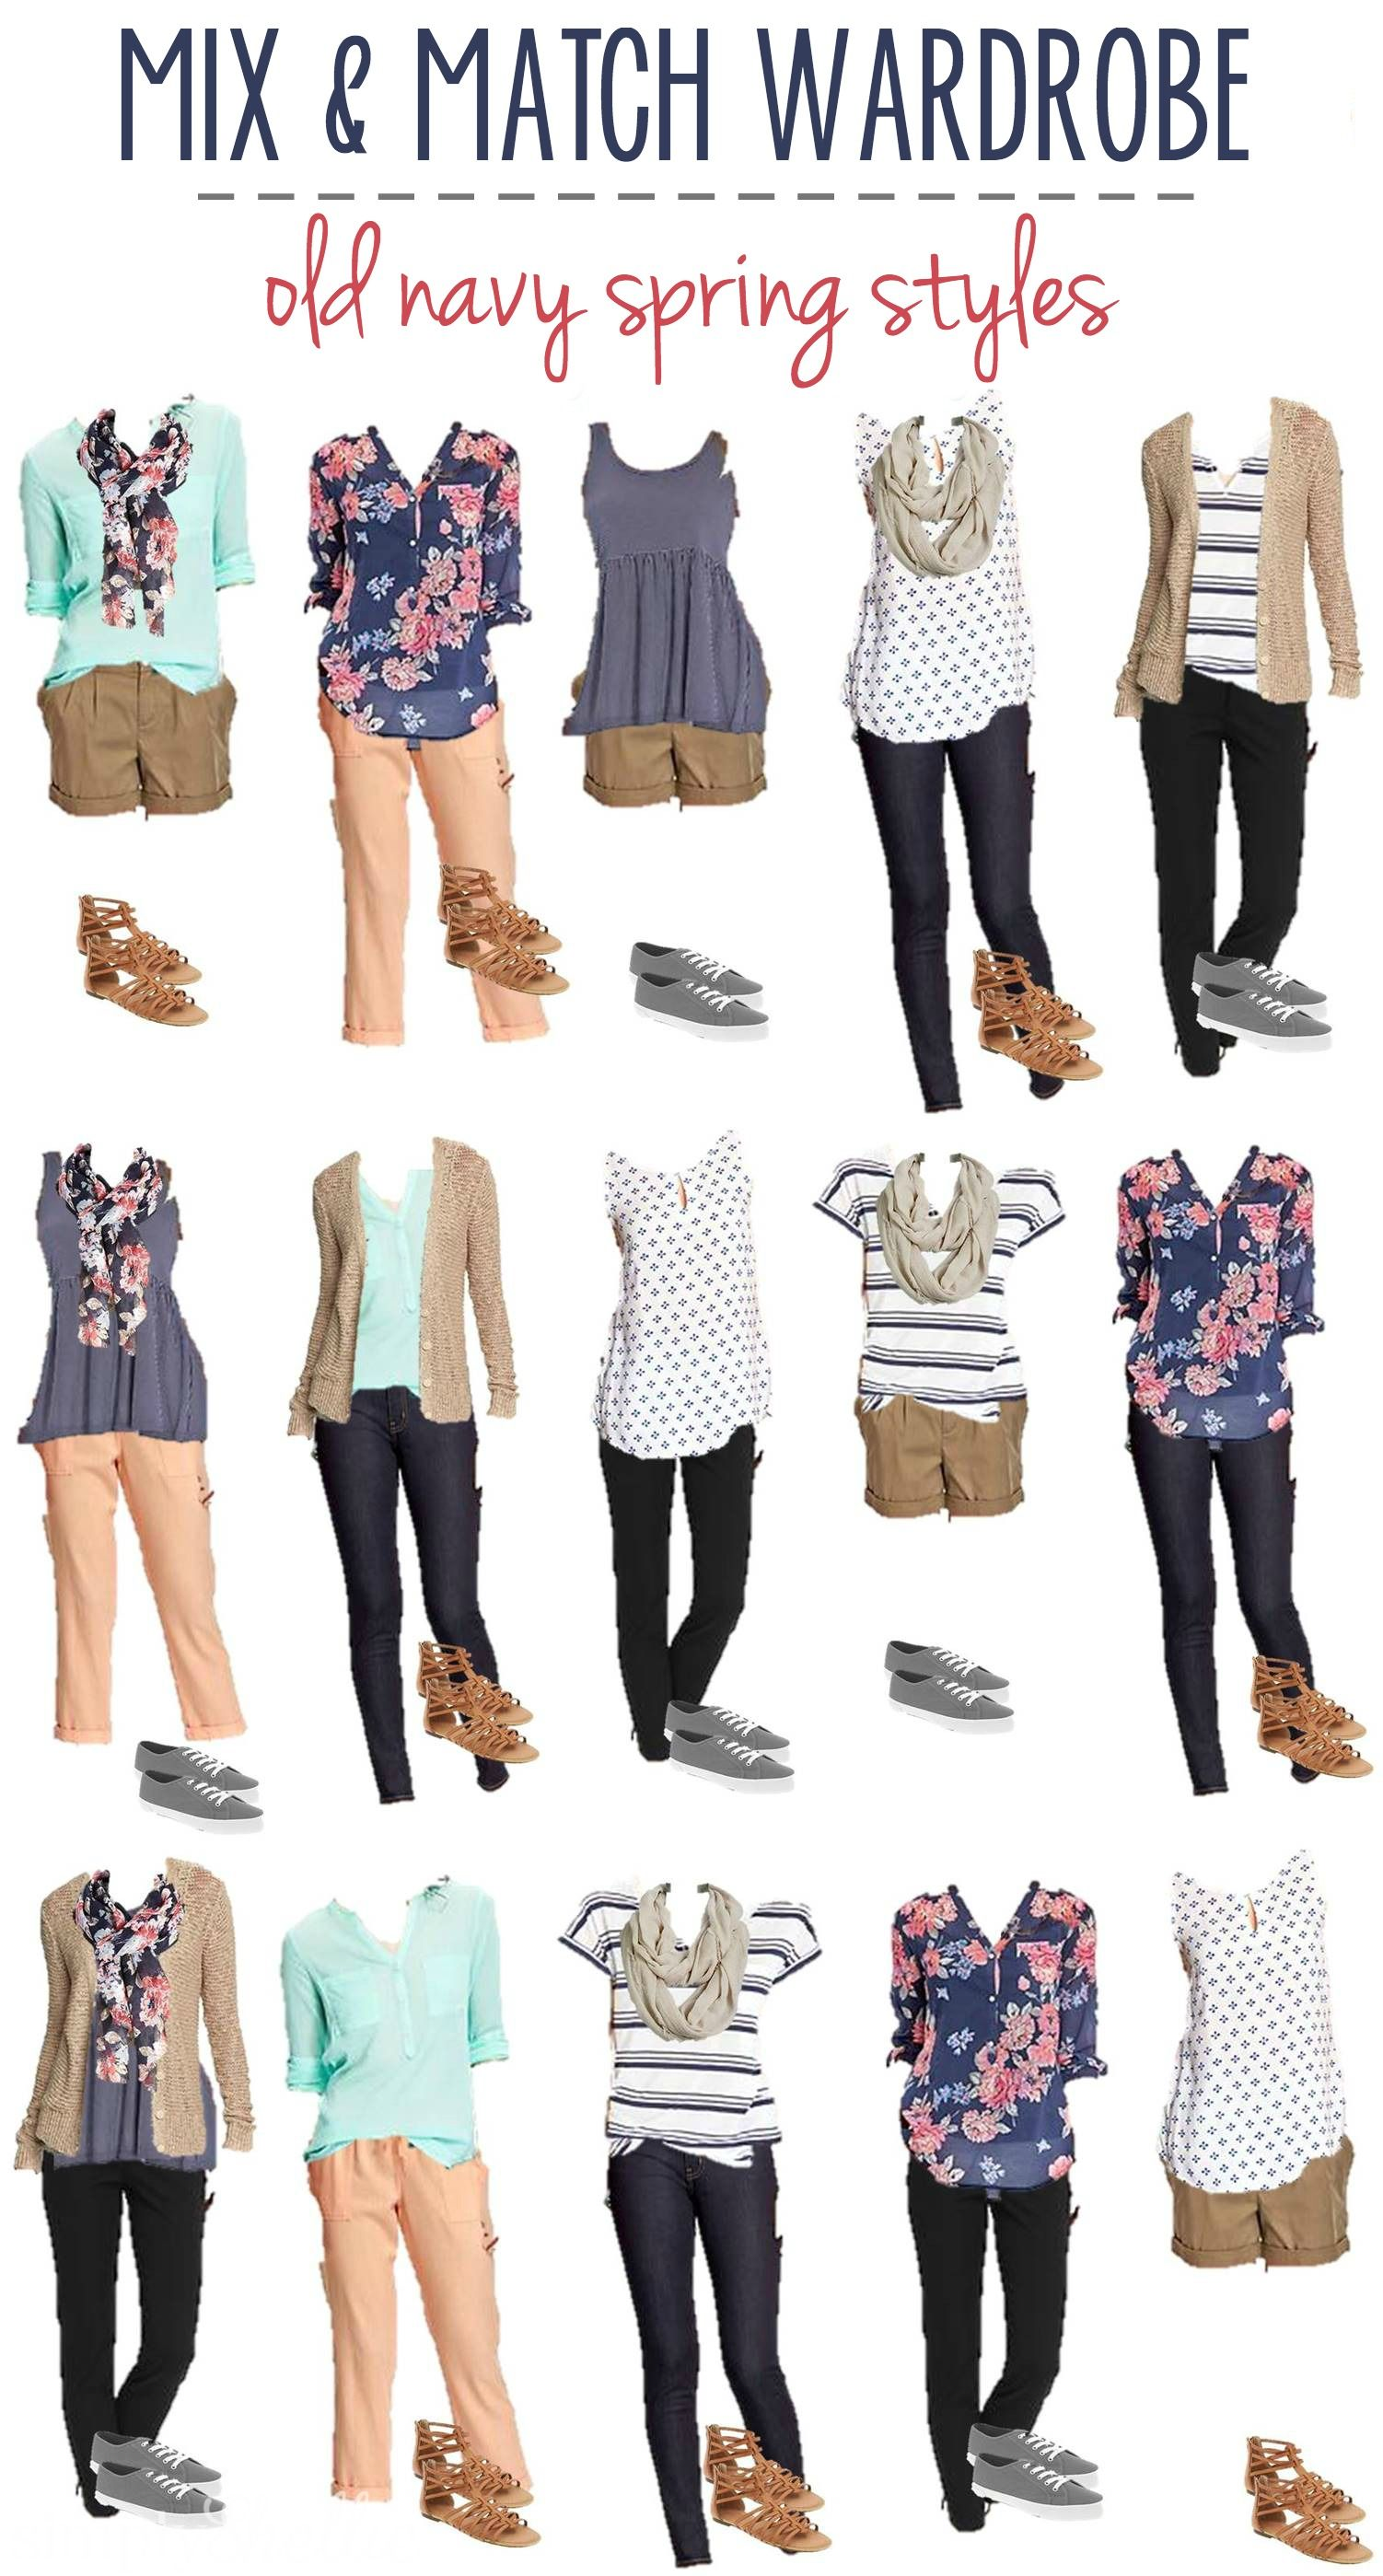 4ad22898ef Transition your wardrobe into Spring with these 14 pieces from Old Navy.  Mix and match to make 16 different outfits. Perfect for an afternoon at the  park